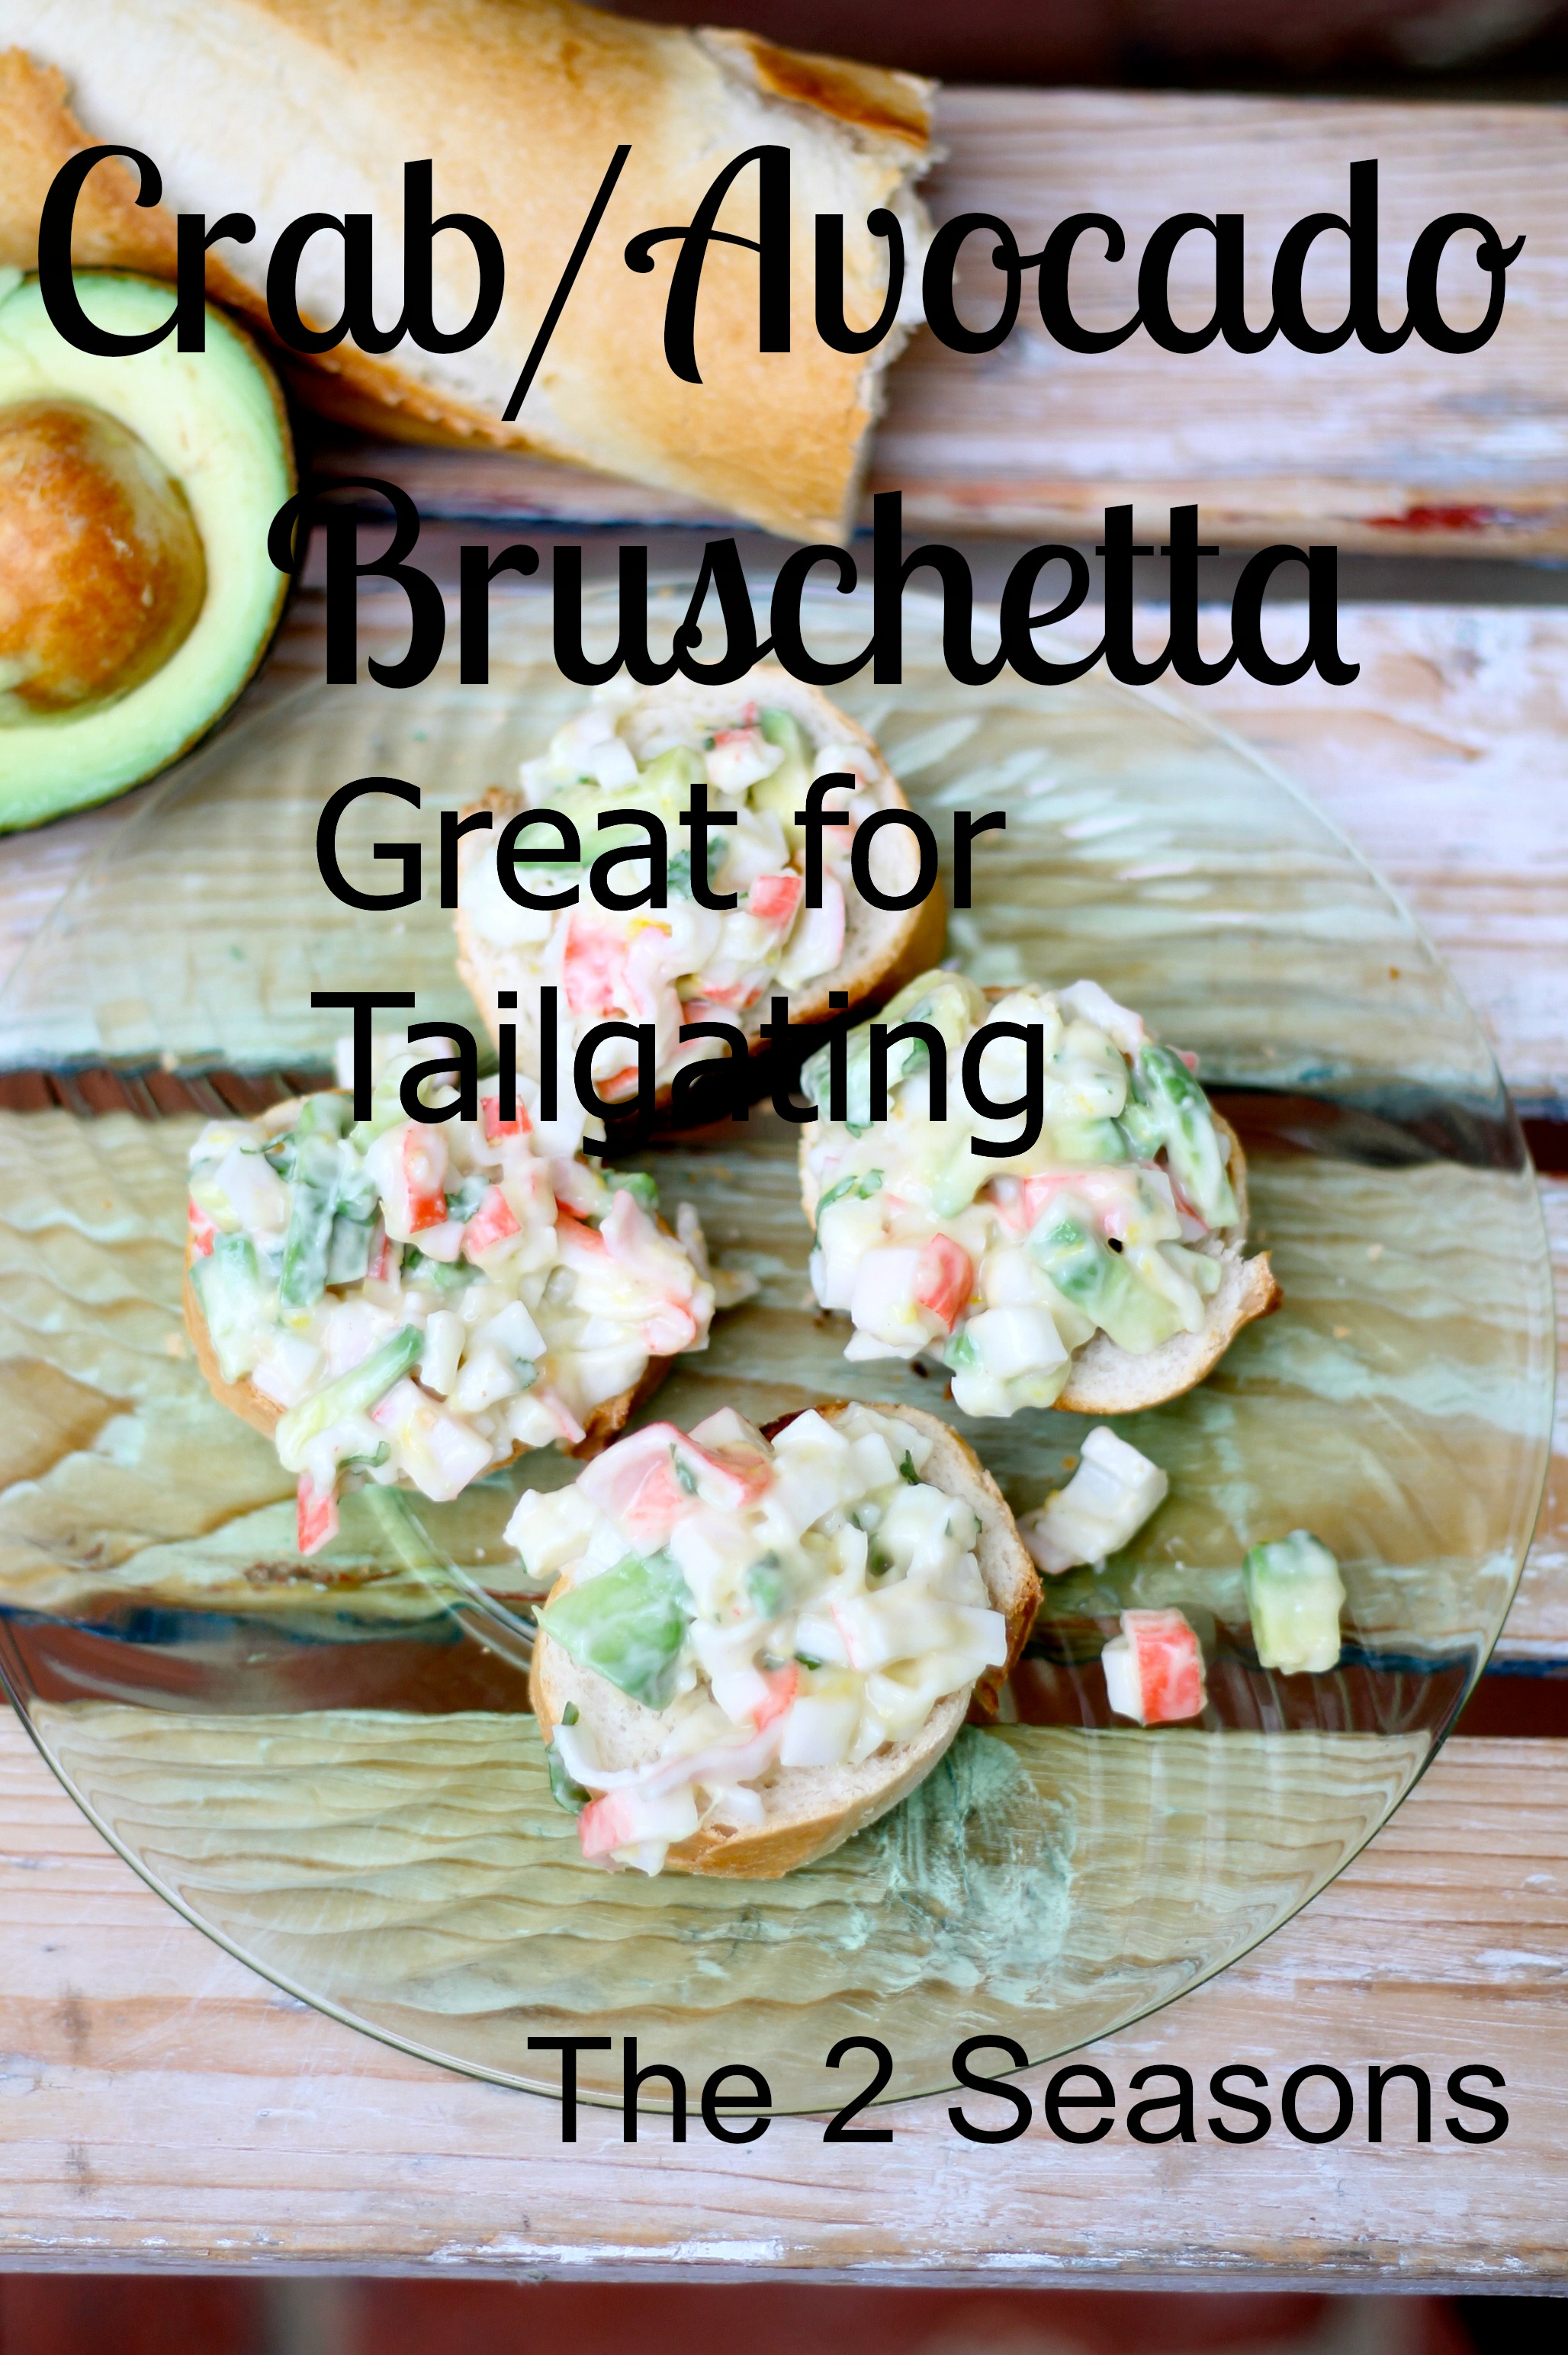 A non-tradtional take on bruschetta that everyone loves. - The 2 Seasons